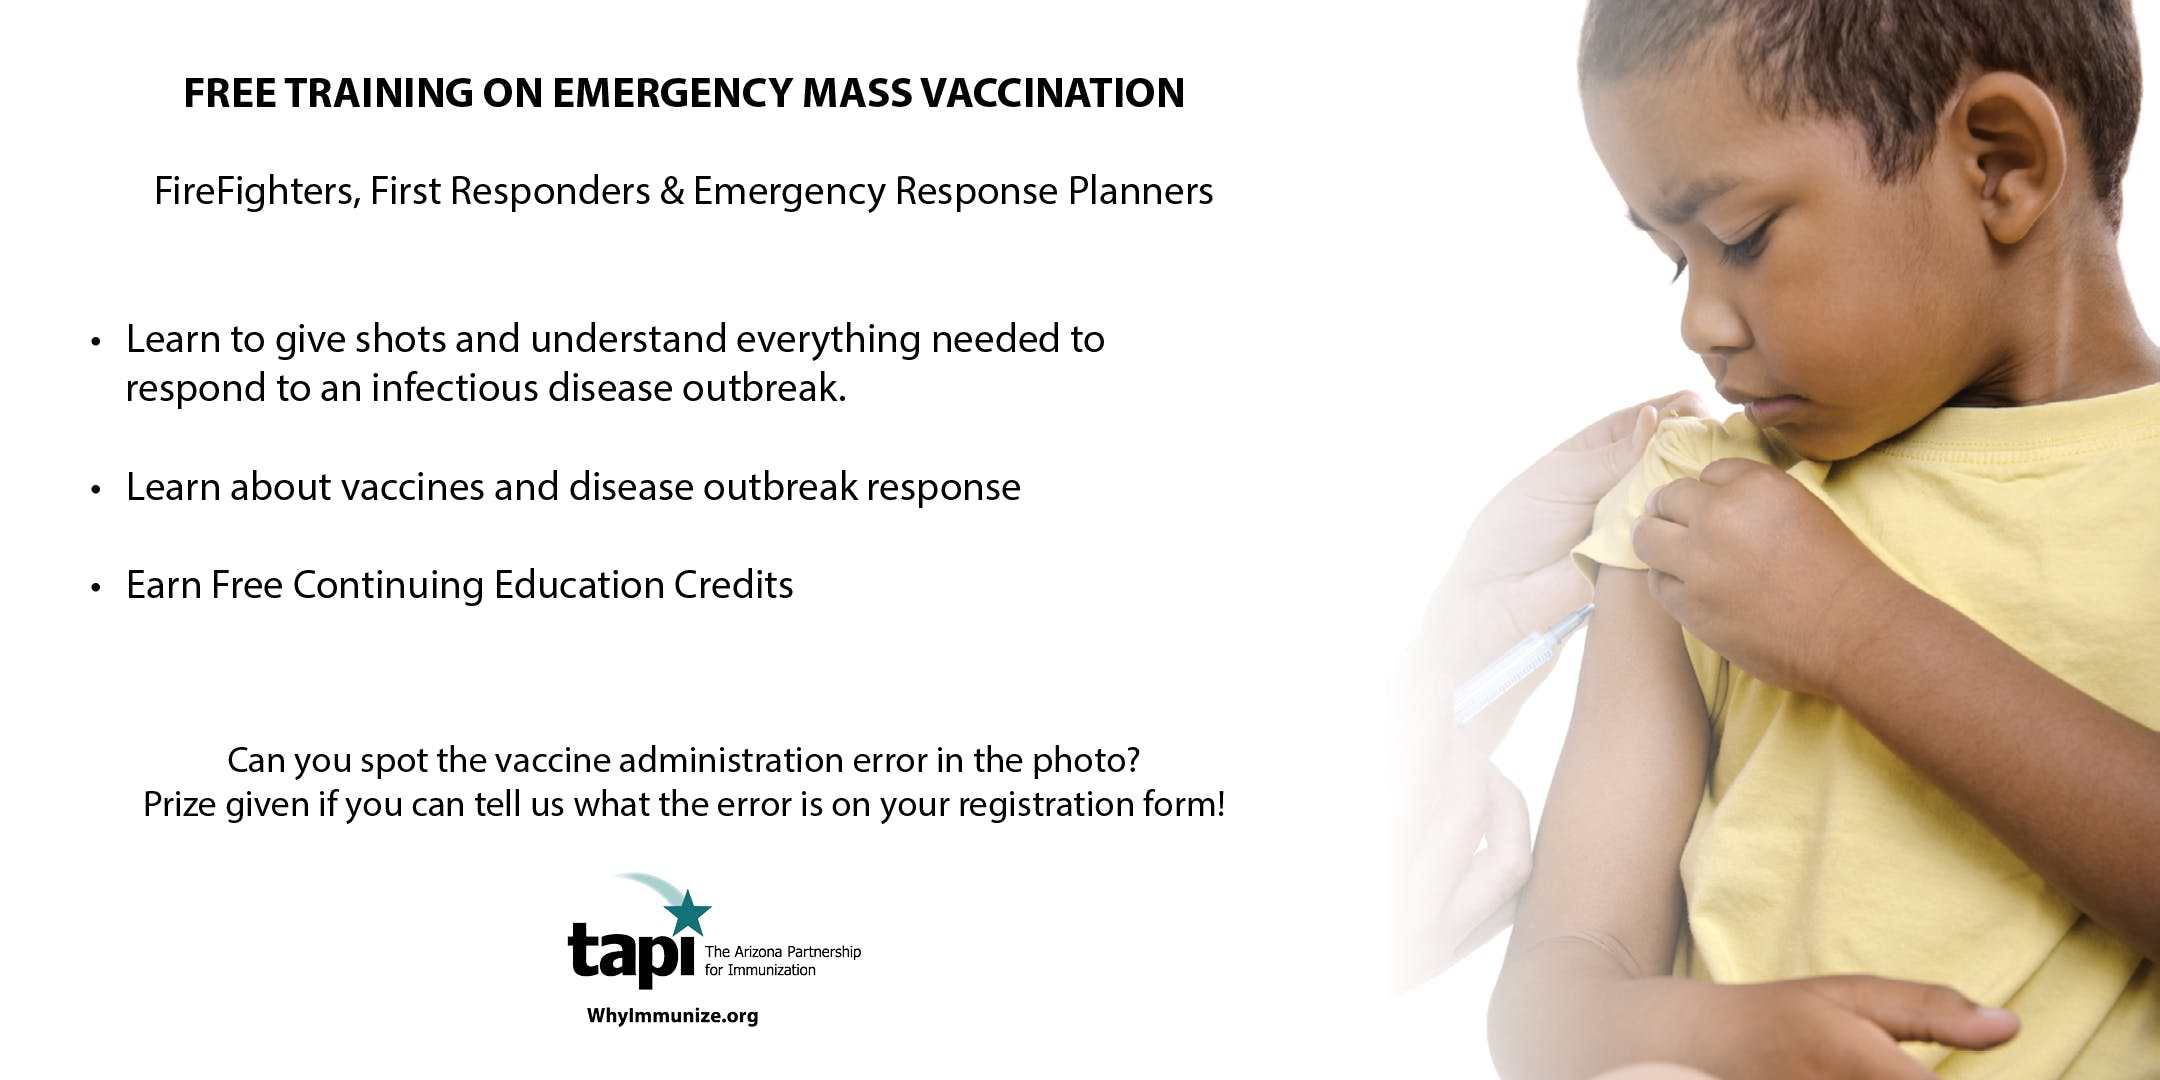 Free Training on Emergency Mass Vaccination